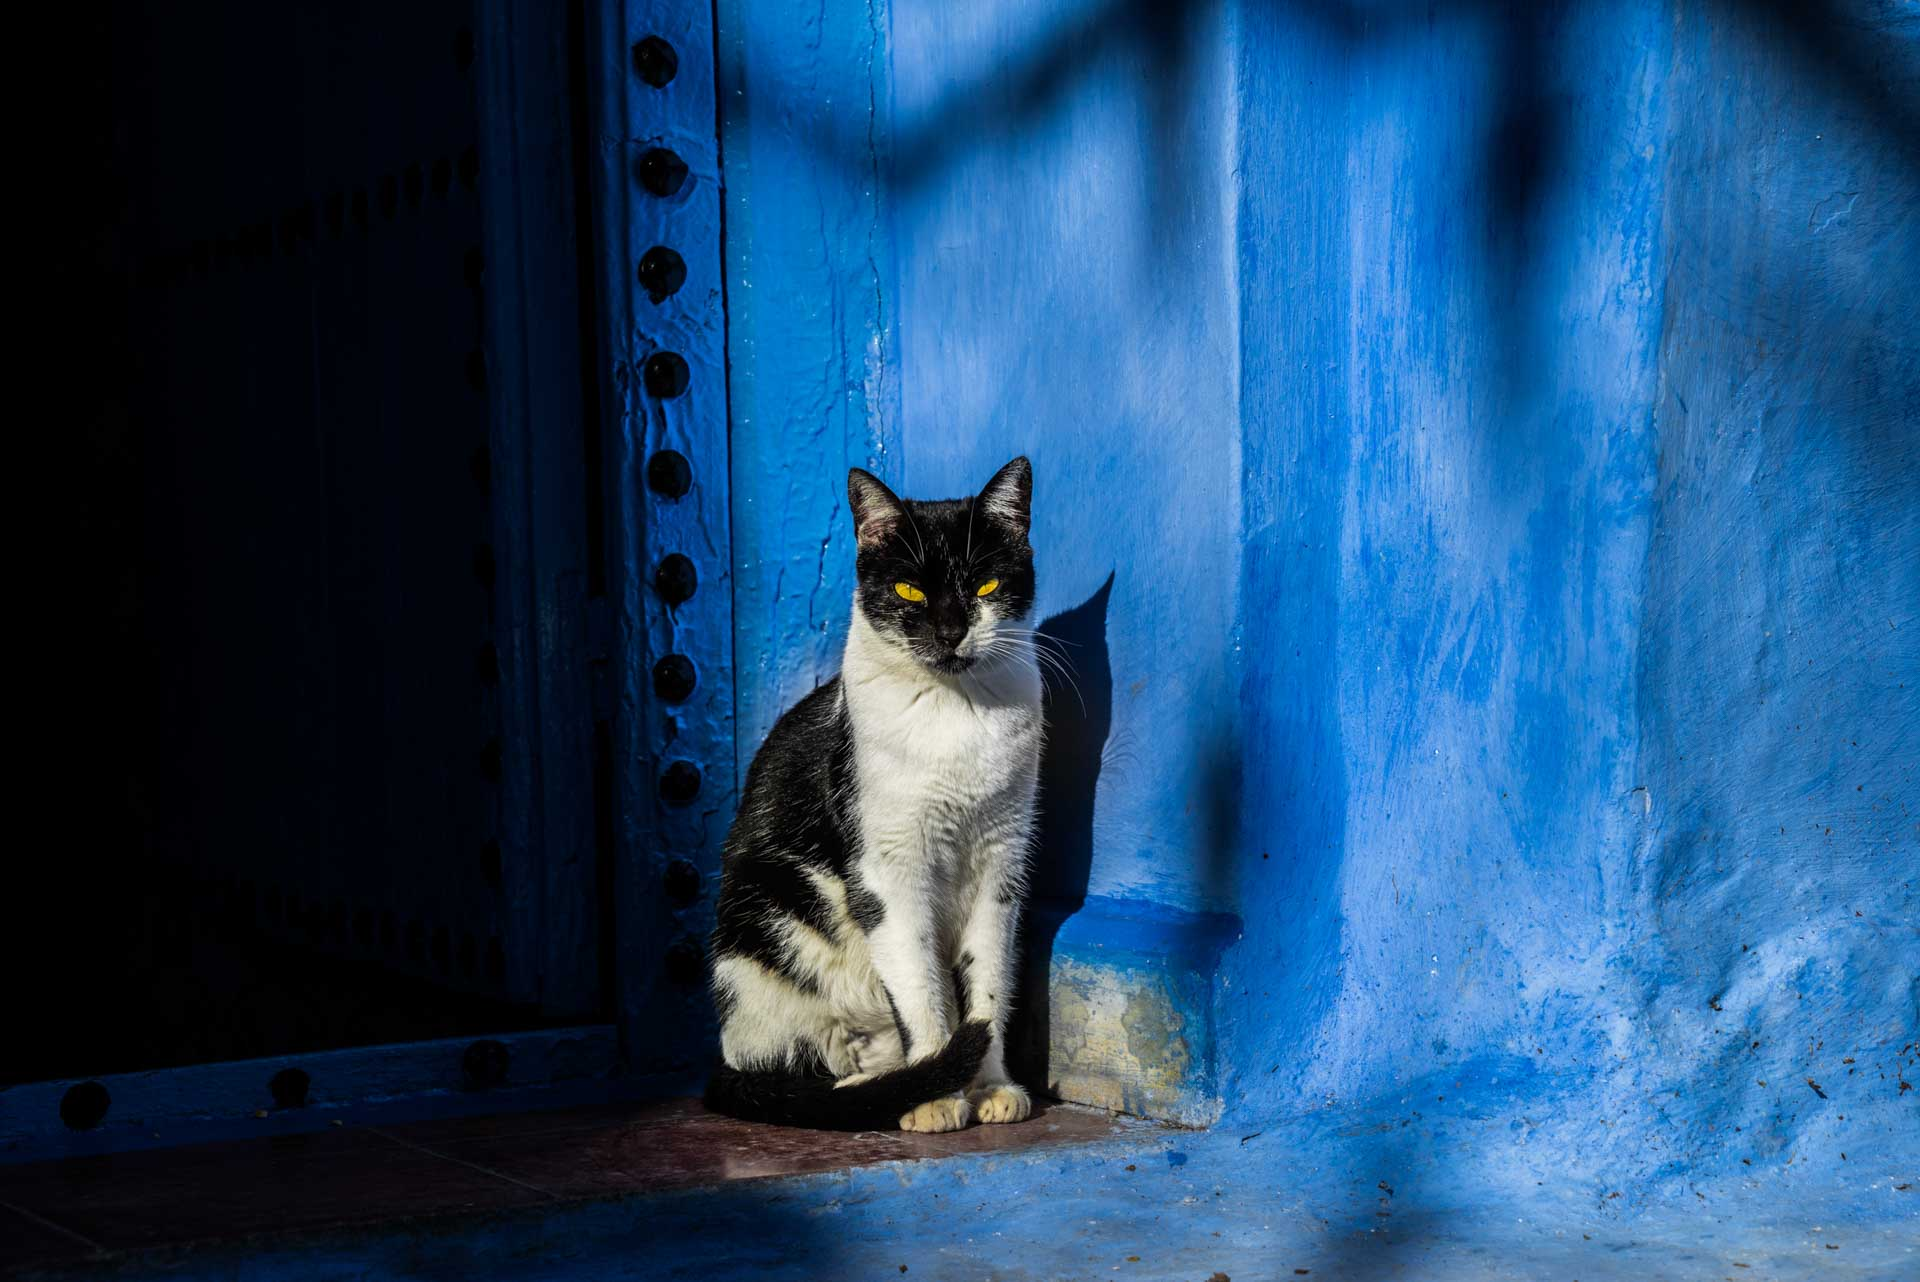 Morocco Chefchaouen blue cat, morocco, chefchaouen, , pescart, photo blog, travel blog, blog, photo travel blog, enrico pescantini, pescantini